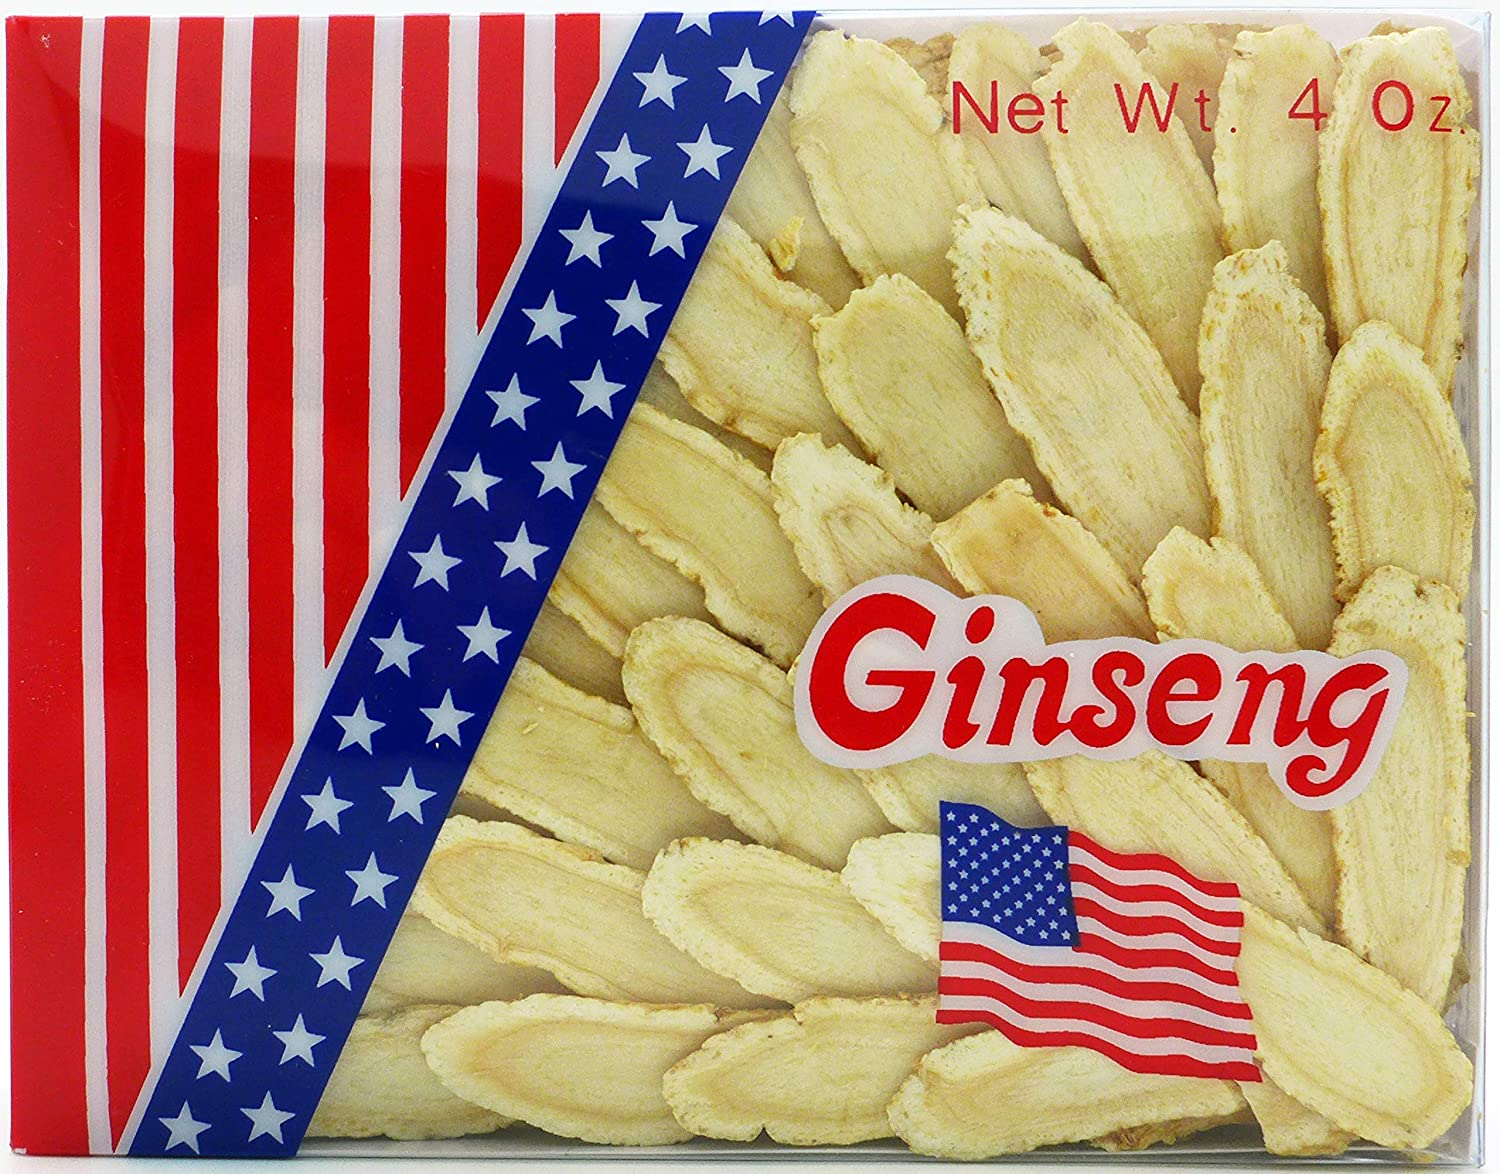 Green Bay American Ginseng From Wisconsin, Large Slice, 4 OZ Ginseng Root Slices Sliced Ginseng Root